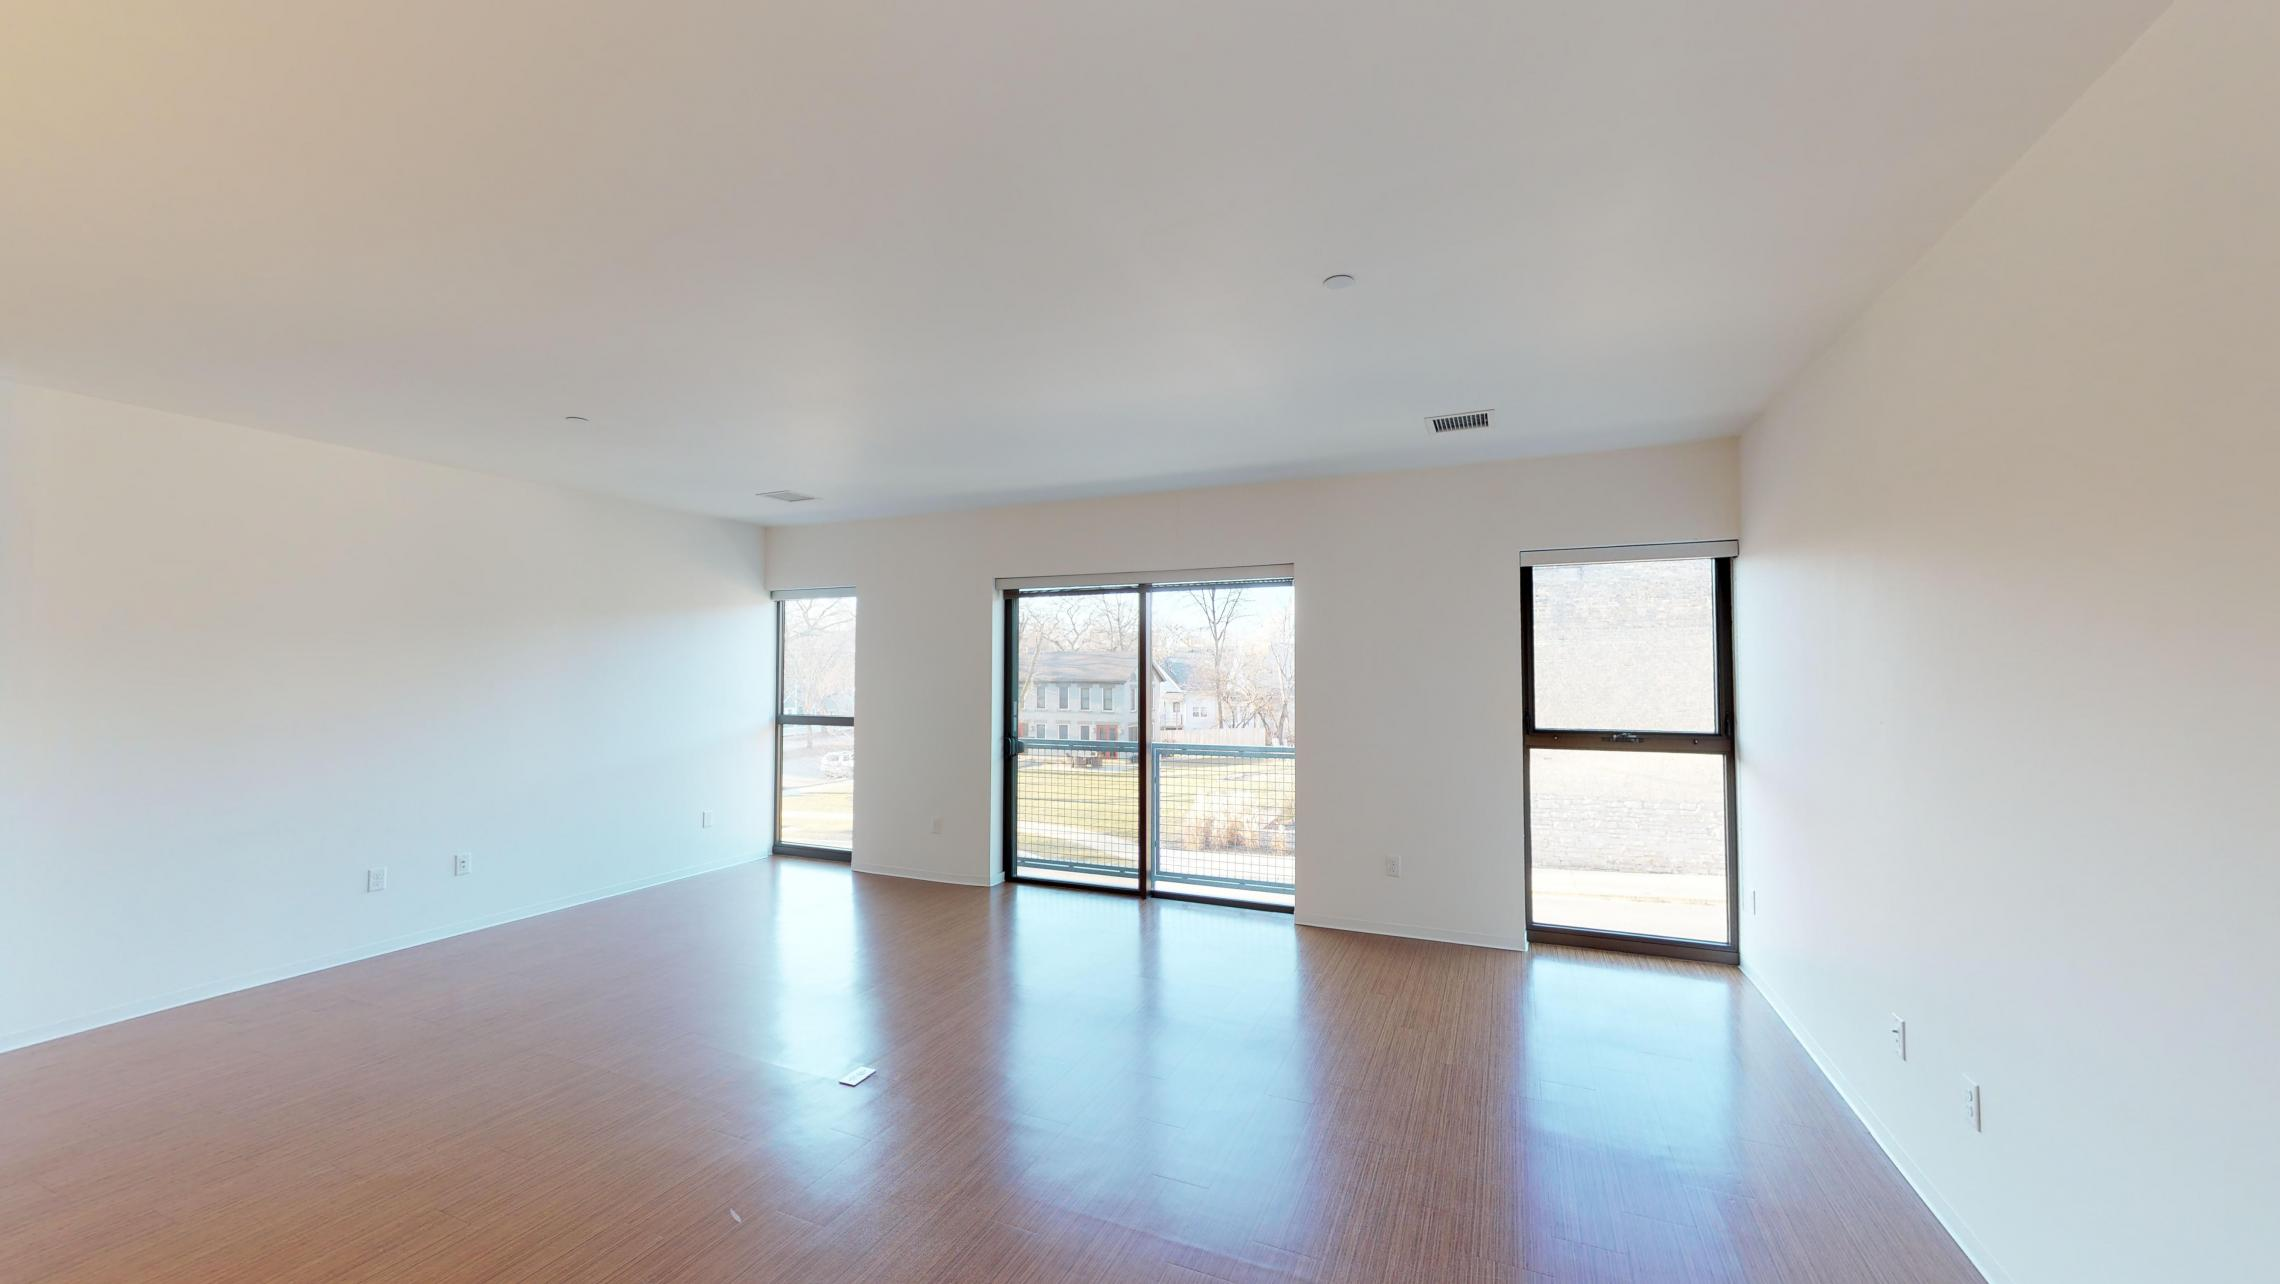 SEVEN27-Apartment-216-one-bedroom-modern-downtown-Madison-fitness-lounge-amenities--city-view-upscale